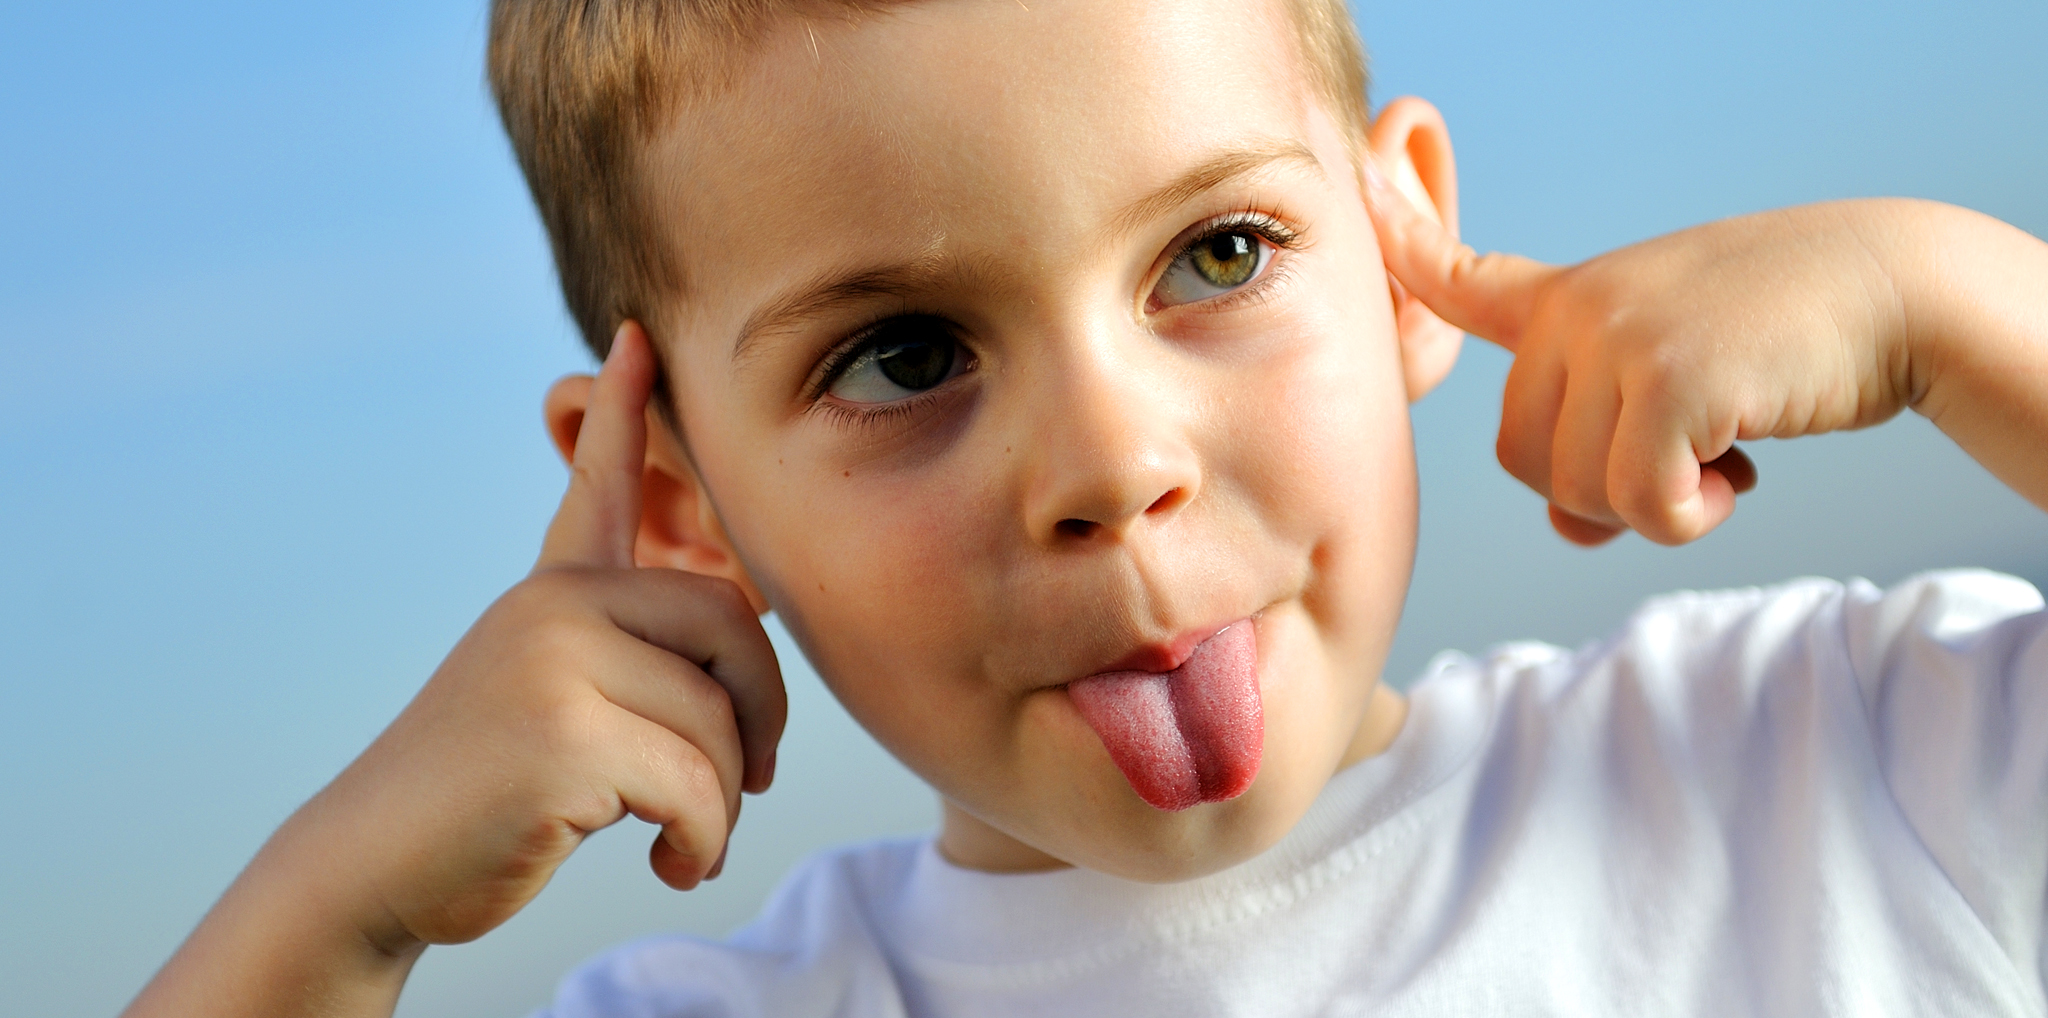 Causes-For-Child-MisBehavior-Reasons-Why.jpg